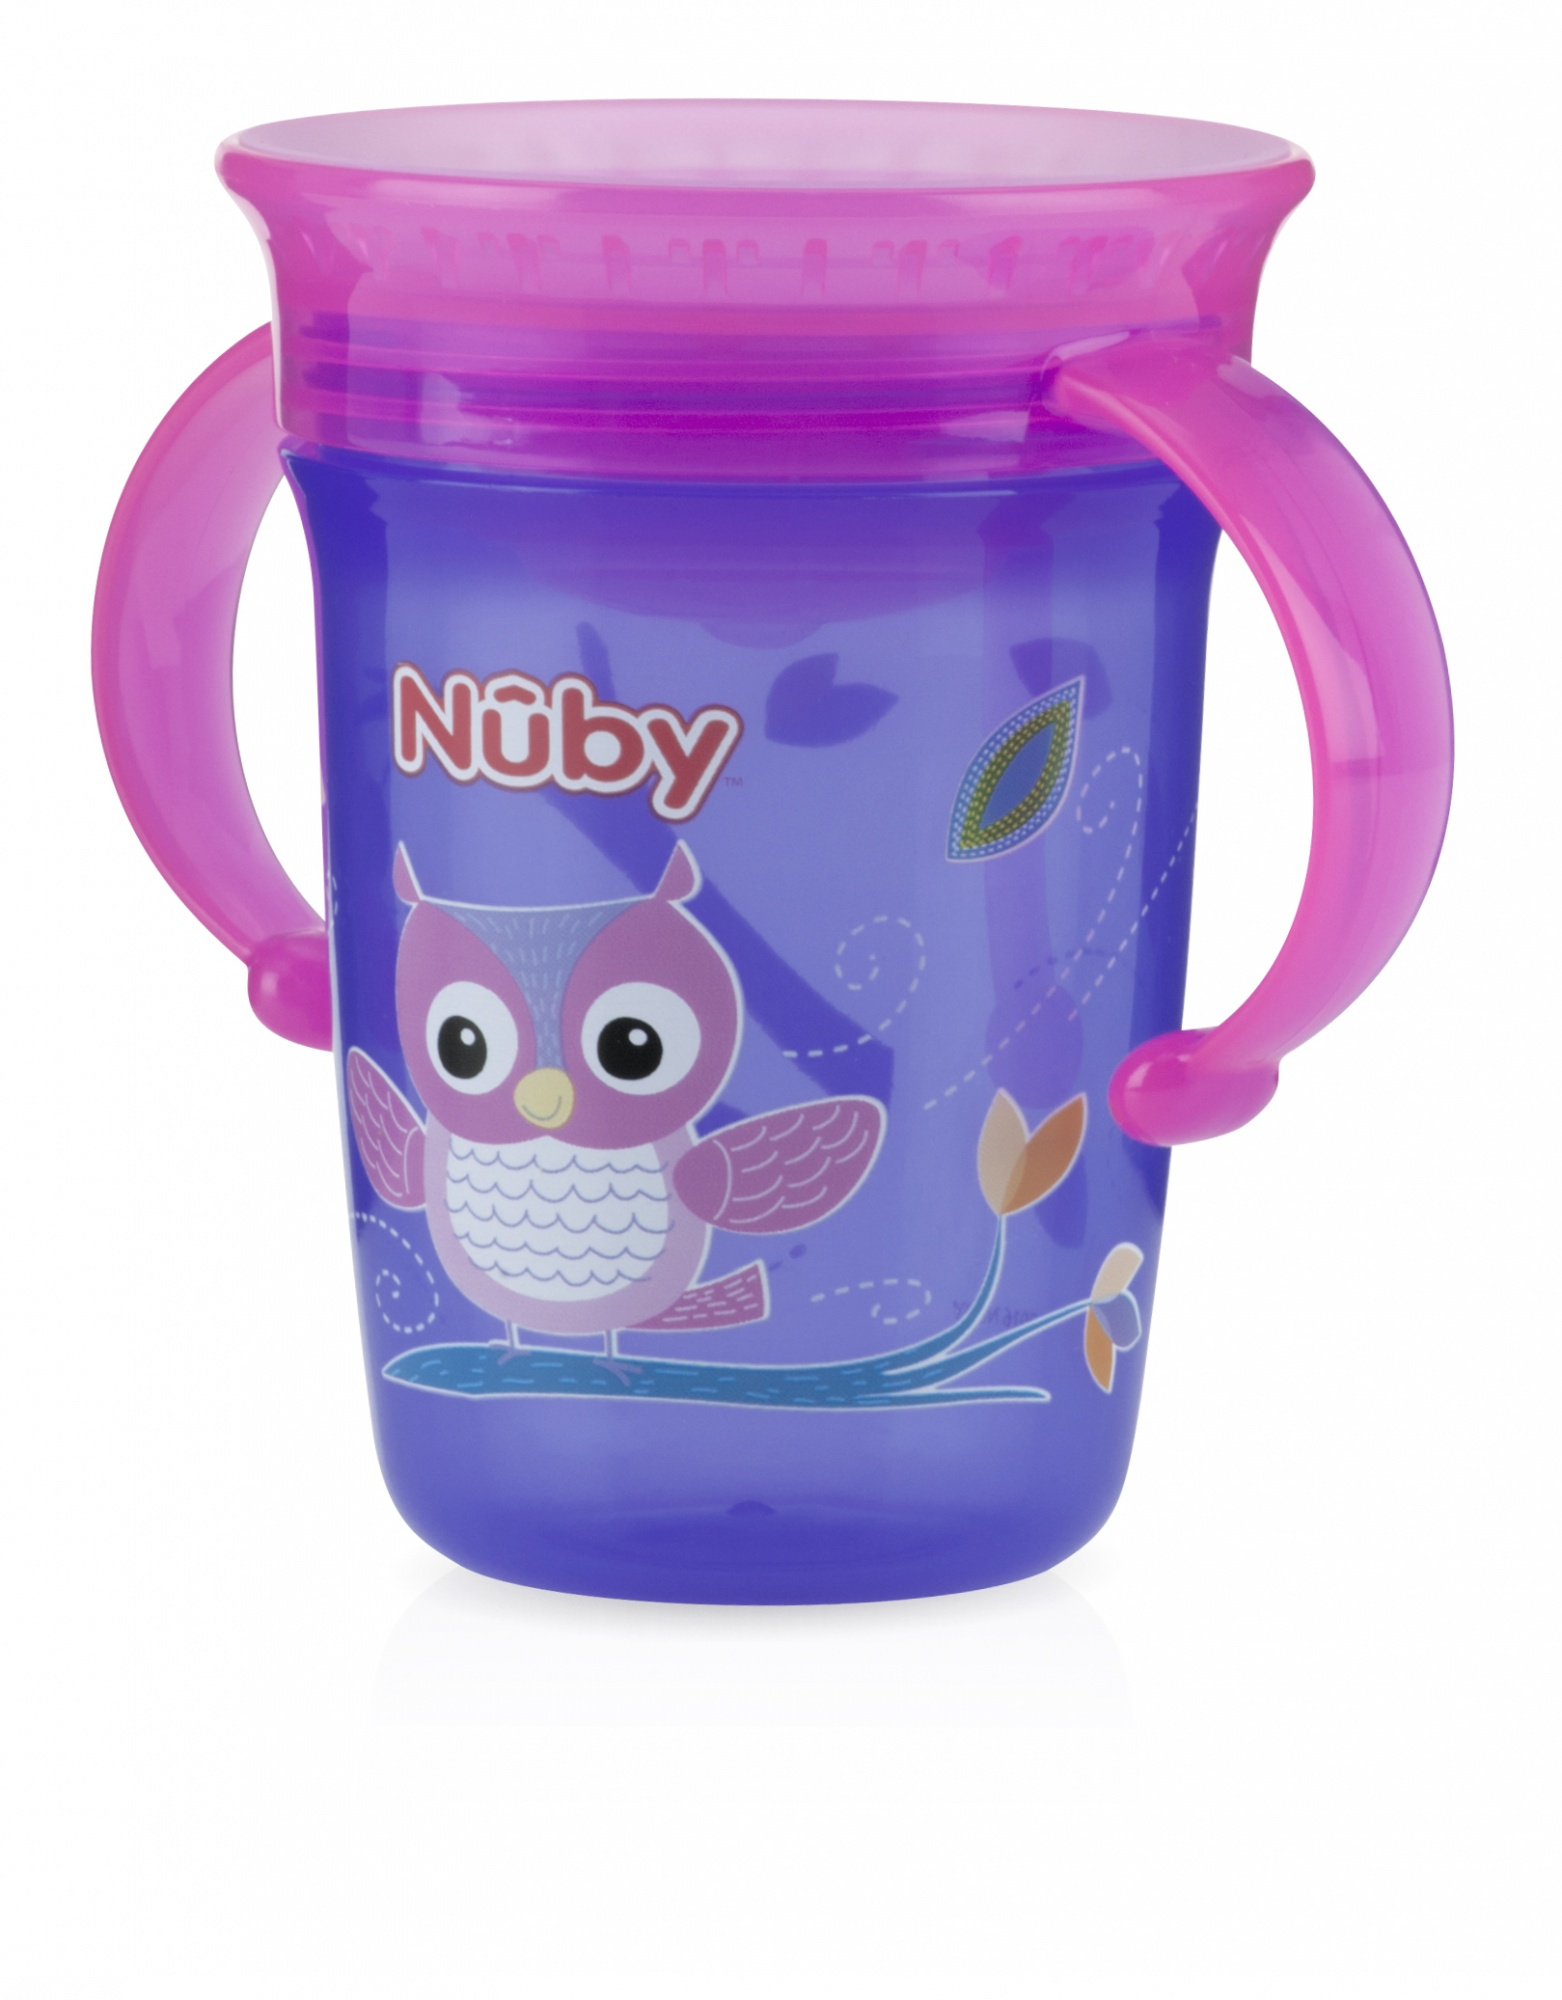 Nuby Sippy Cup Baby Buy Online From Stainless Mug With Lid 240 Ml Blue Monkey